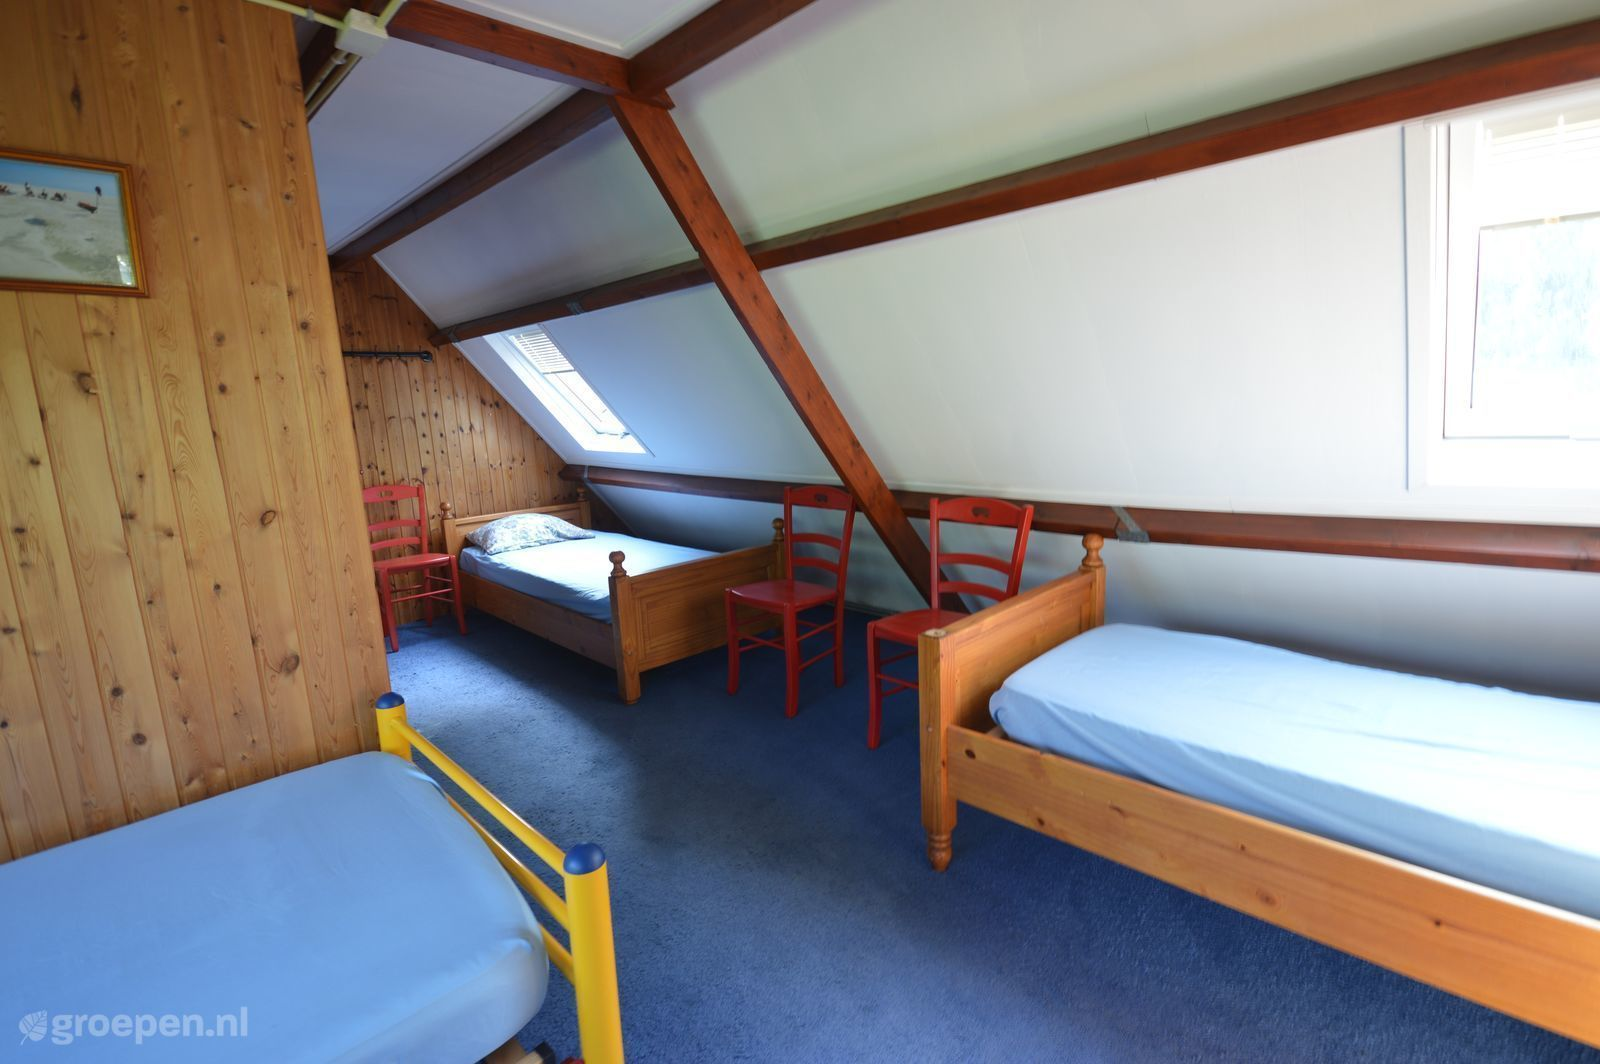 Group accommodation Wirdum